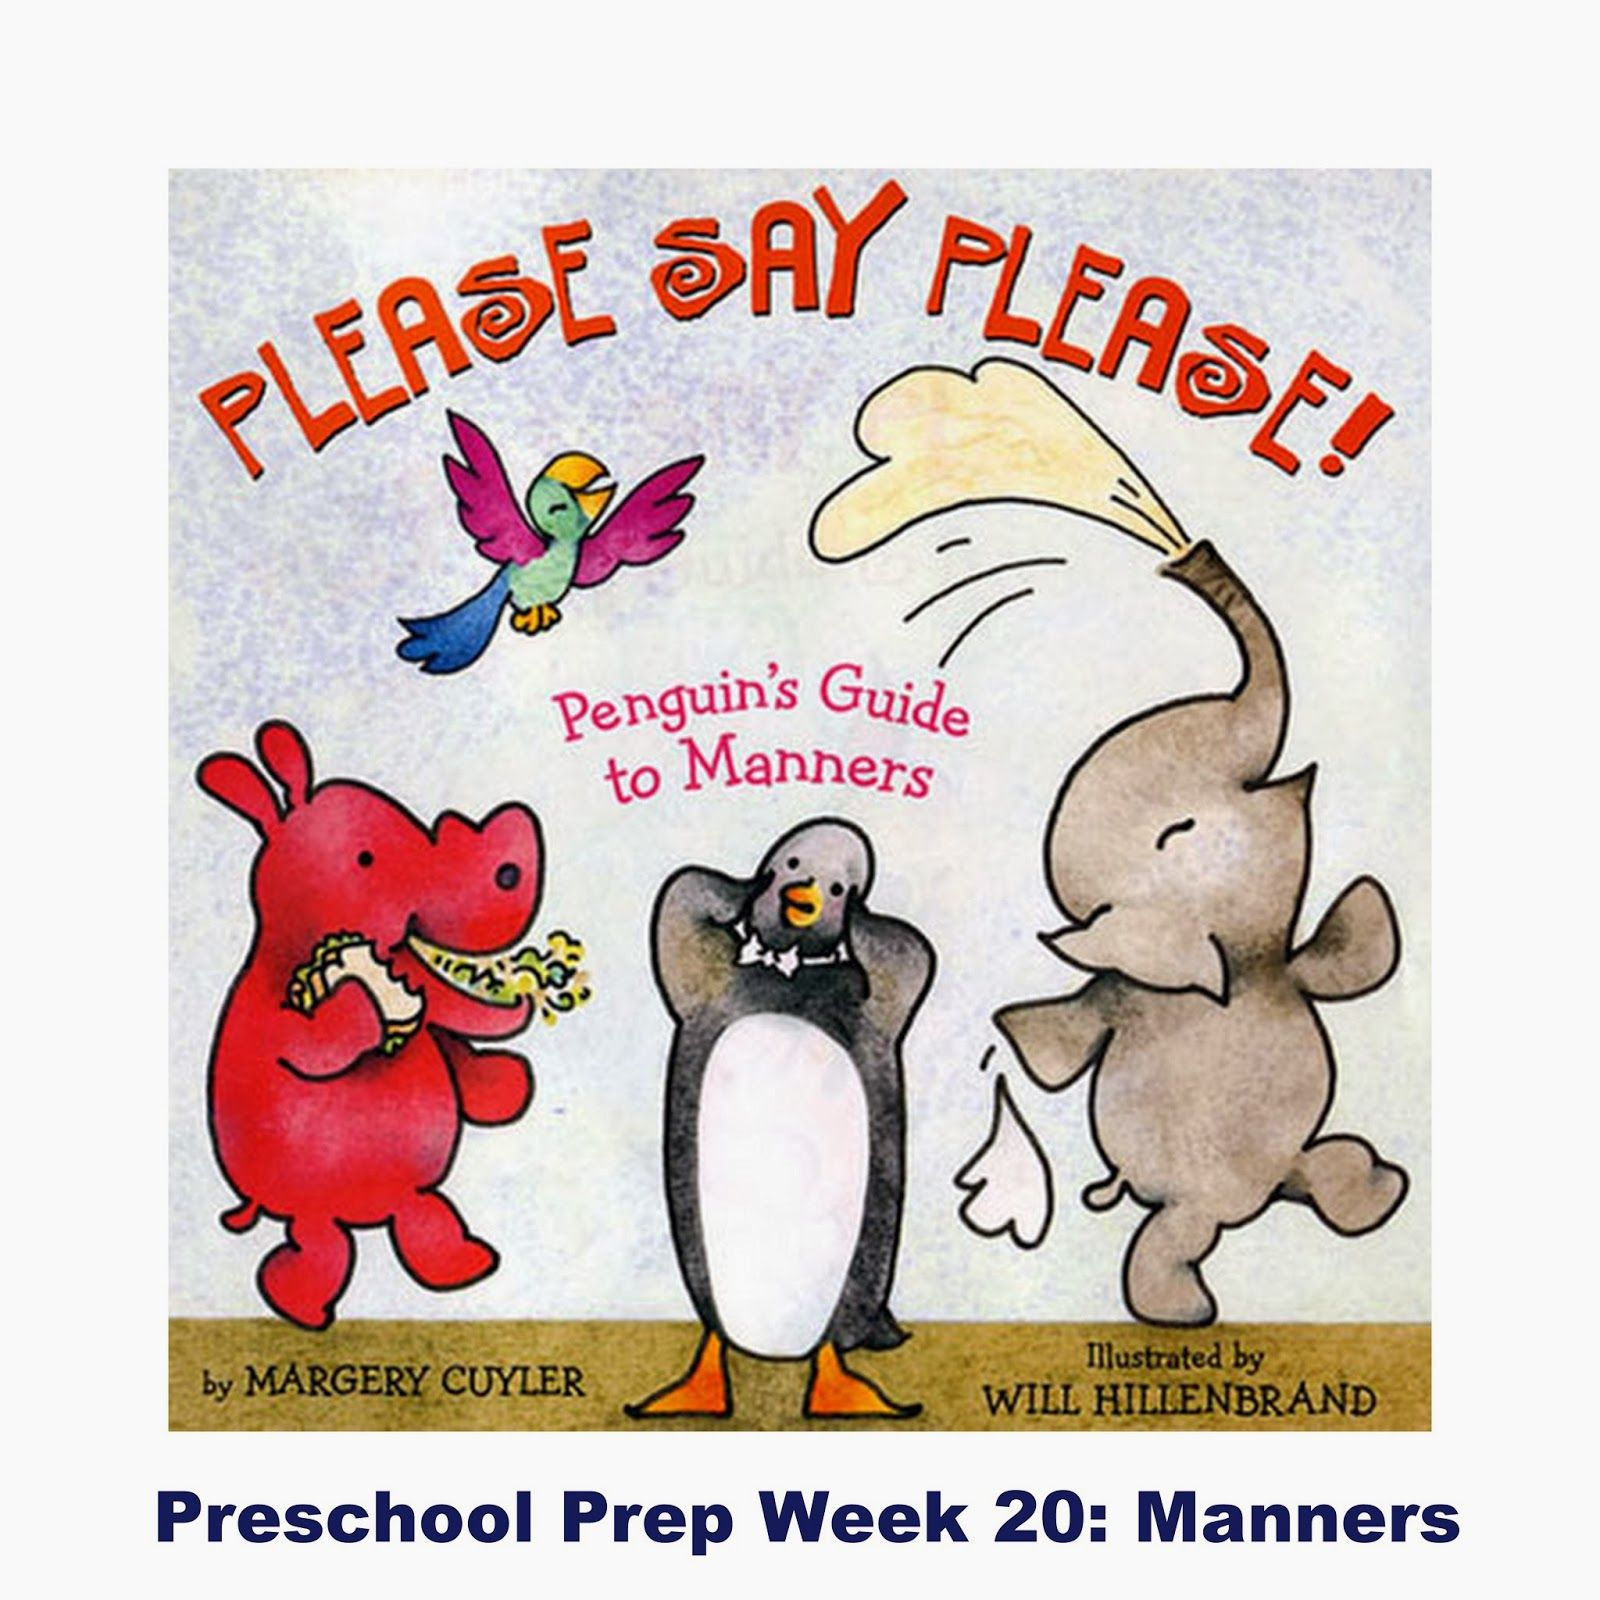 Preschool Prep Week 20 Manners